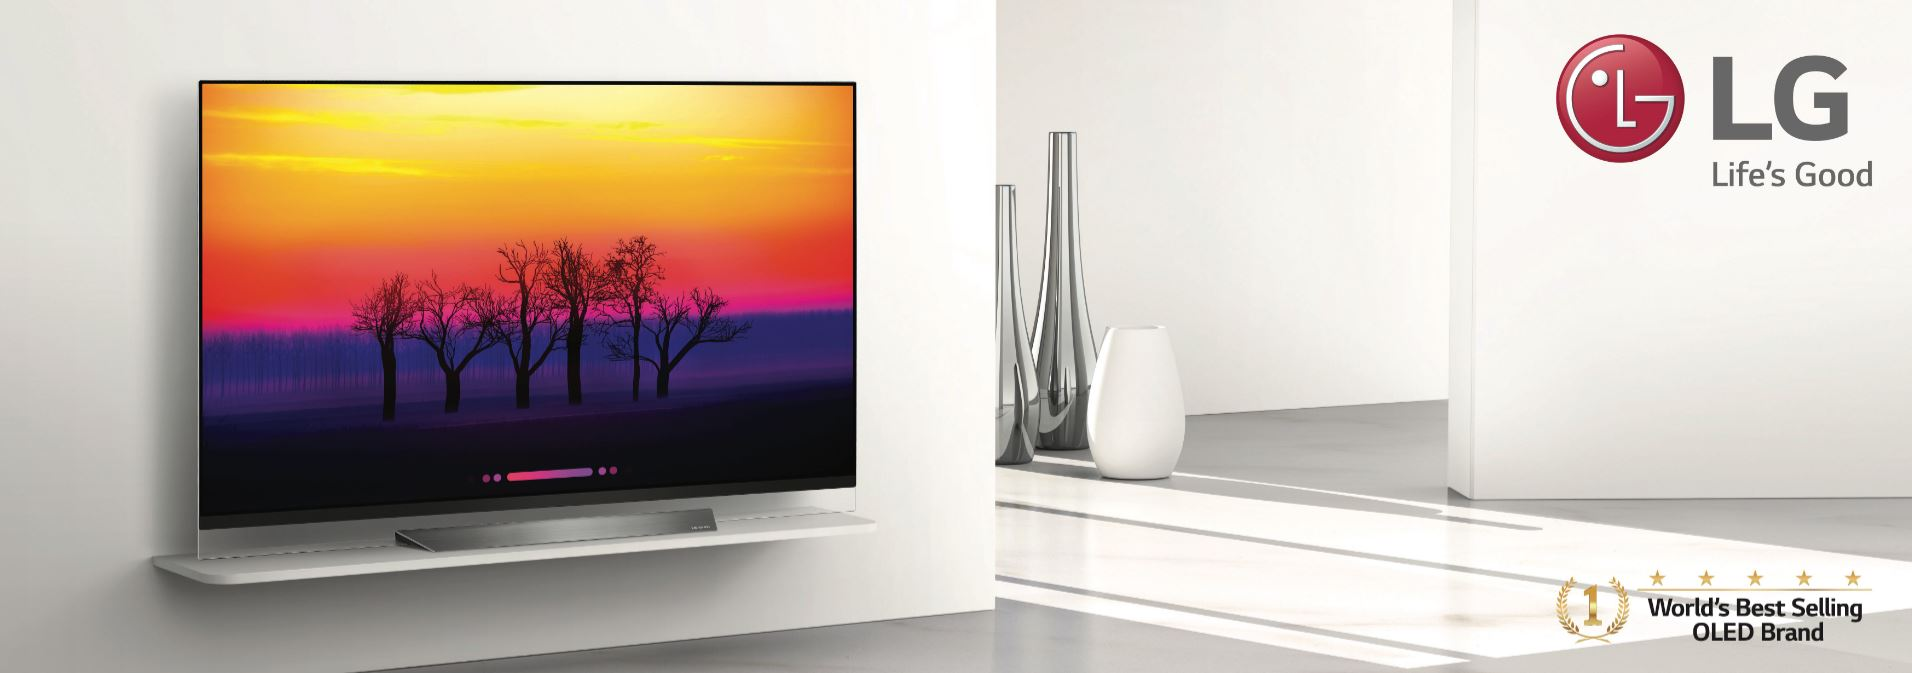 LG IS THE WORLD'S BEST-SELLING OLED TV BRAND